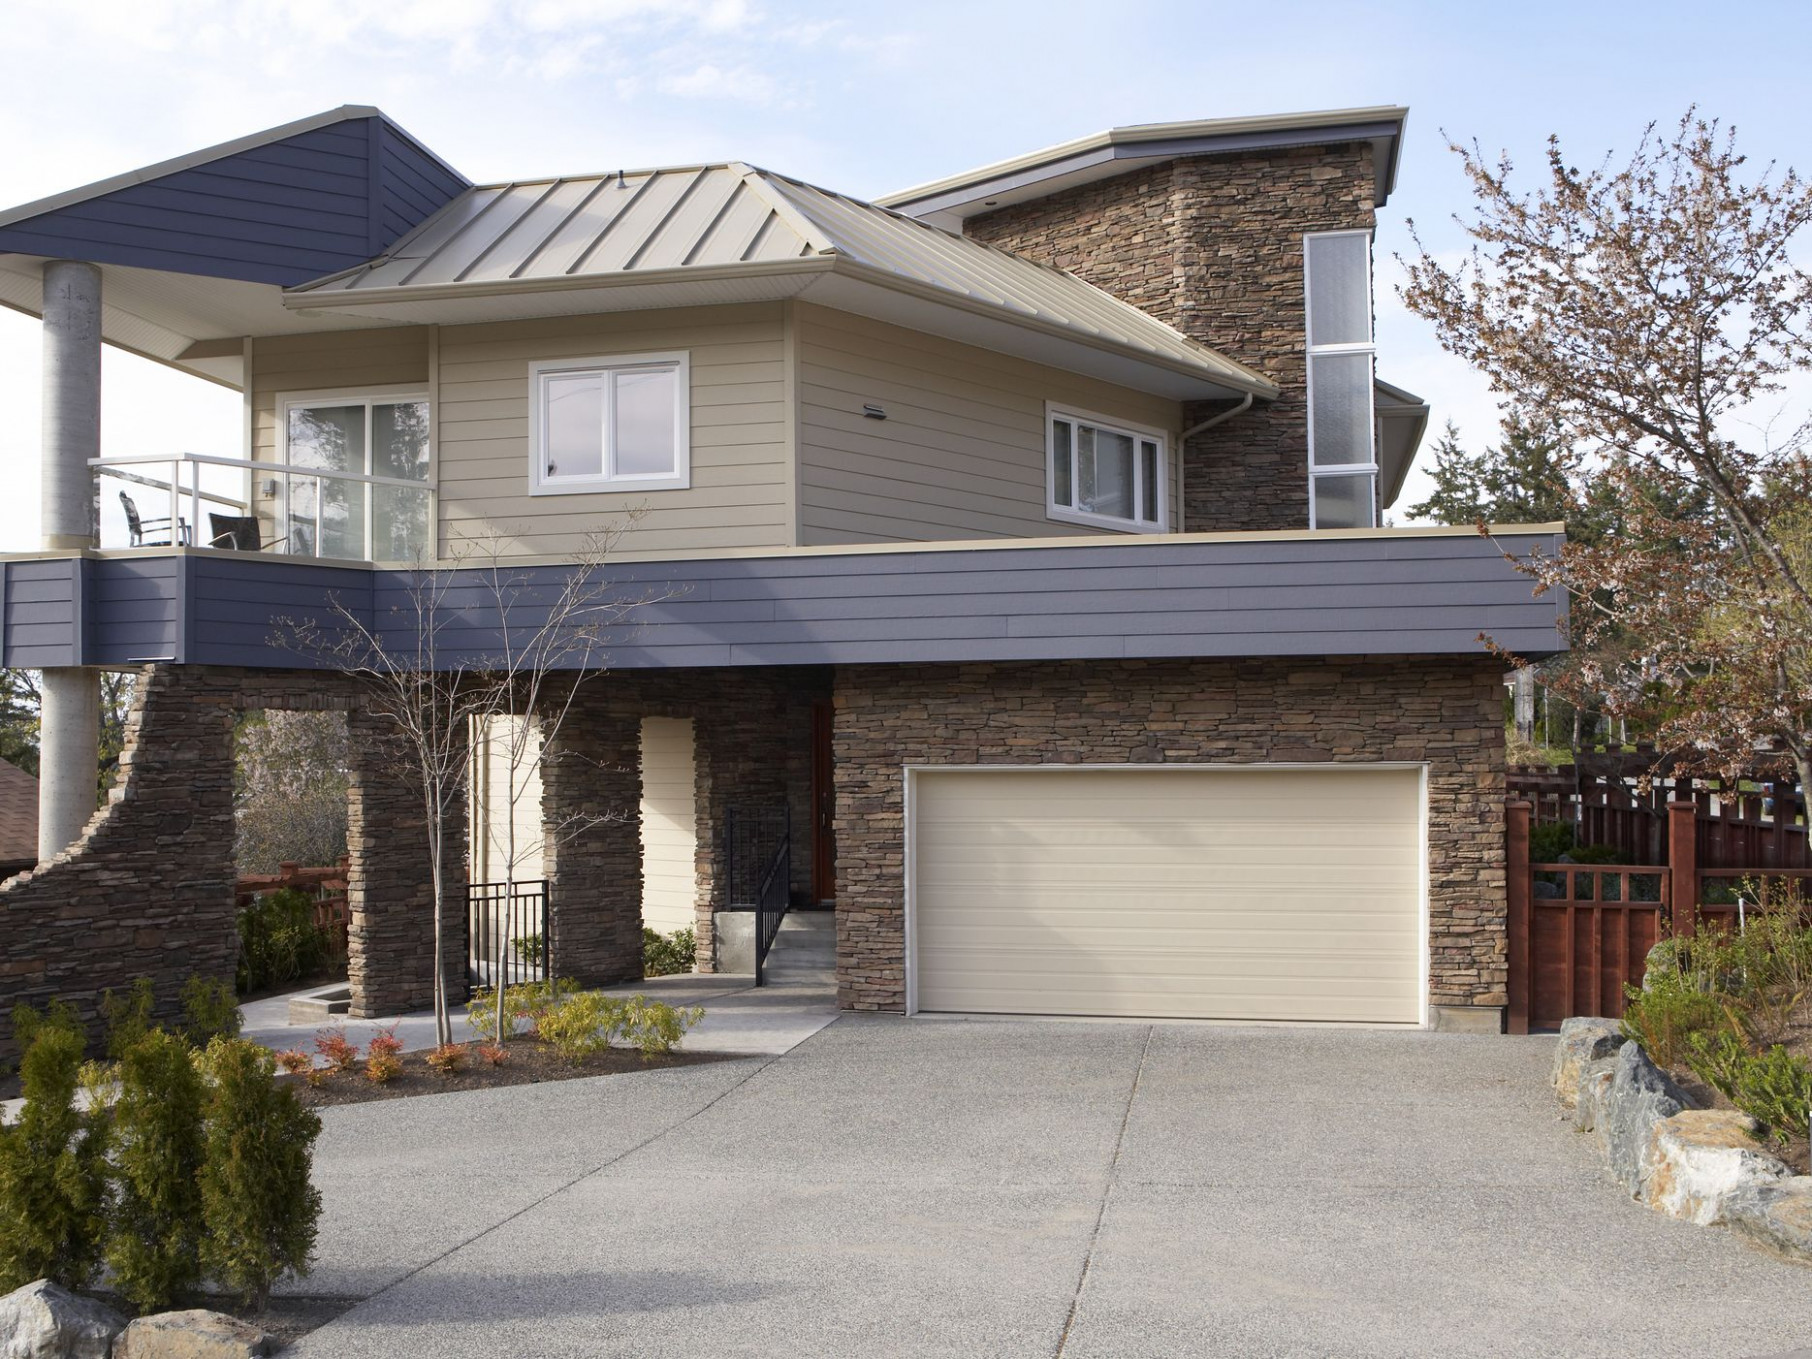 13 Tips For Designing A New Garage Single Car Garage With Carport